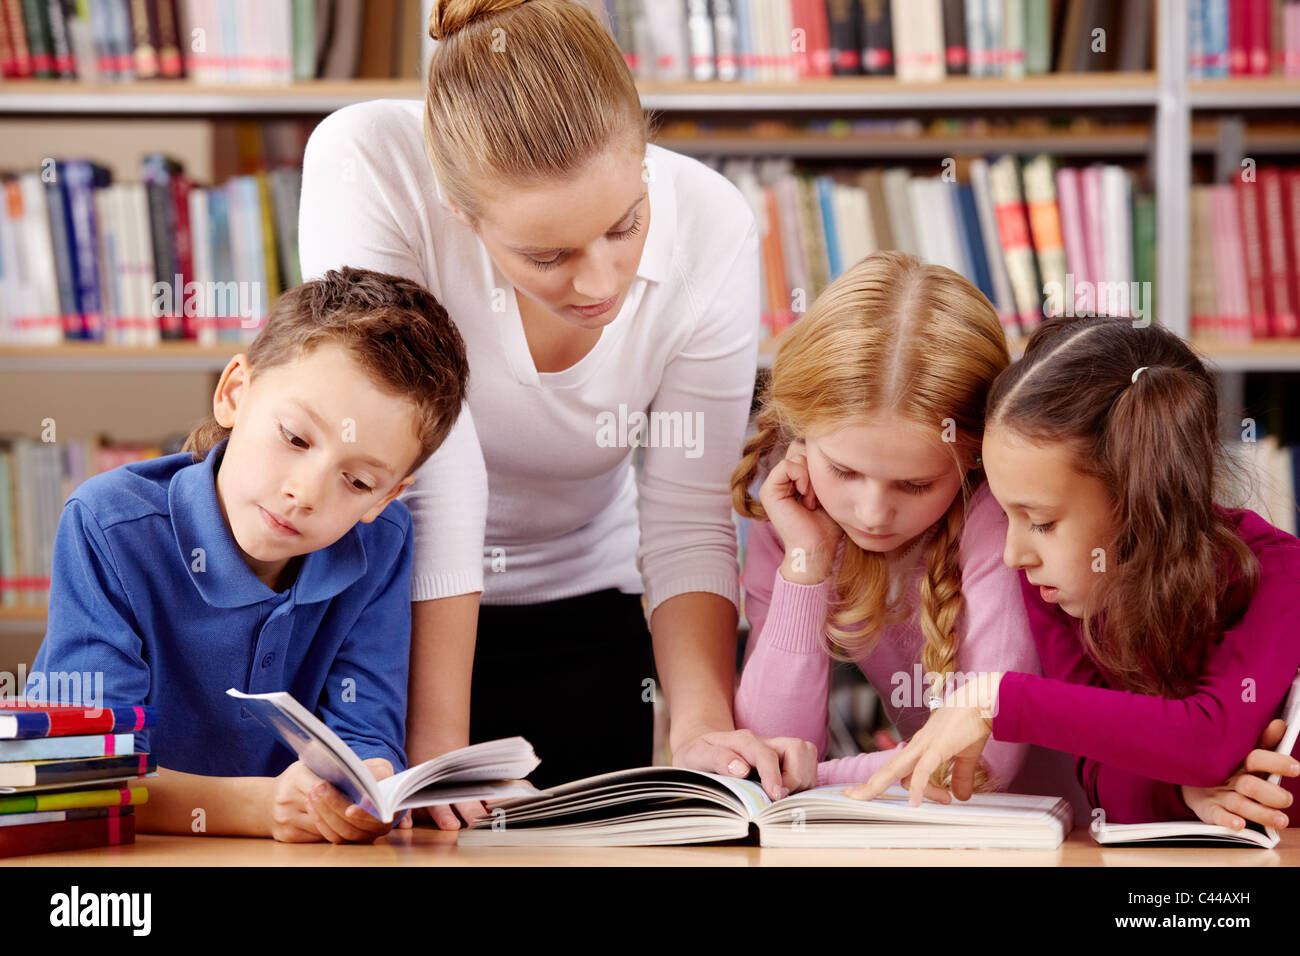 Portrait of pupils and teacher reading interesting book in library - Stock Image